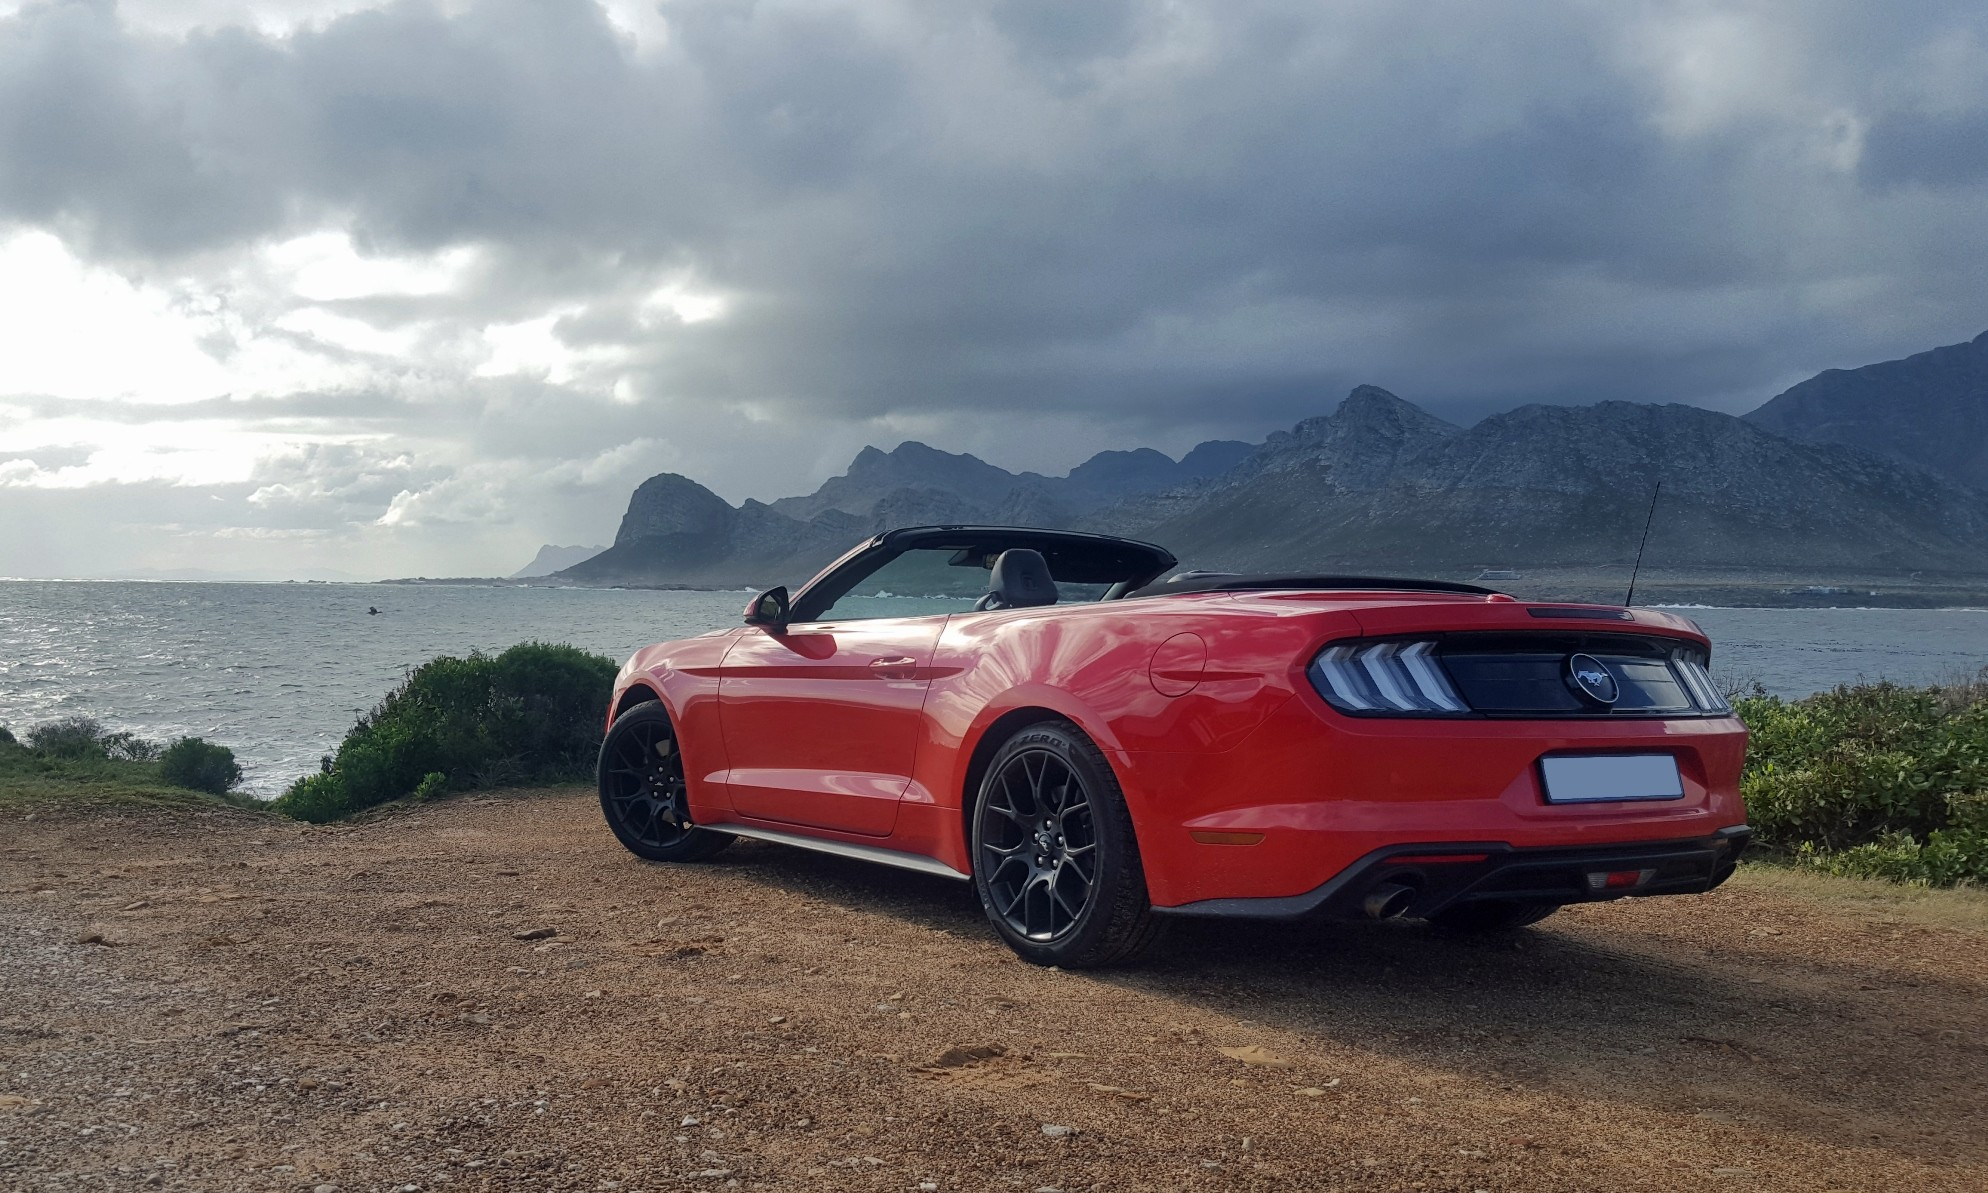 Ford Mustang Convertible rear